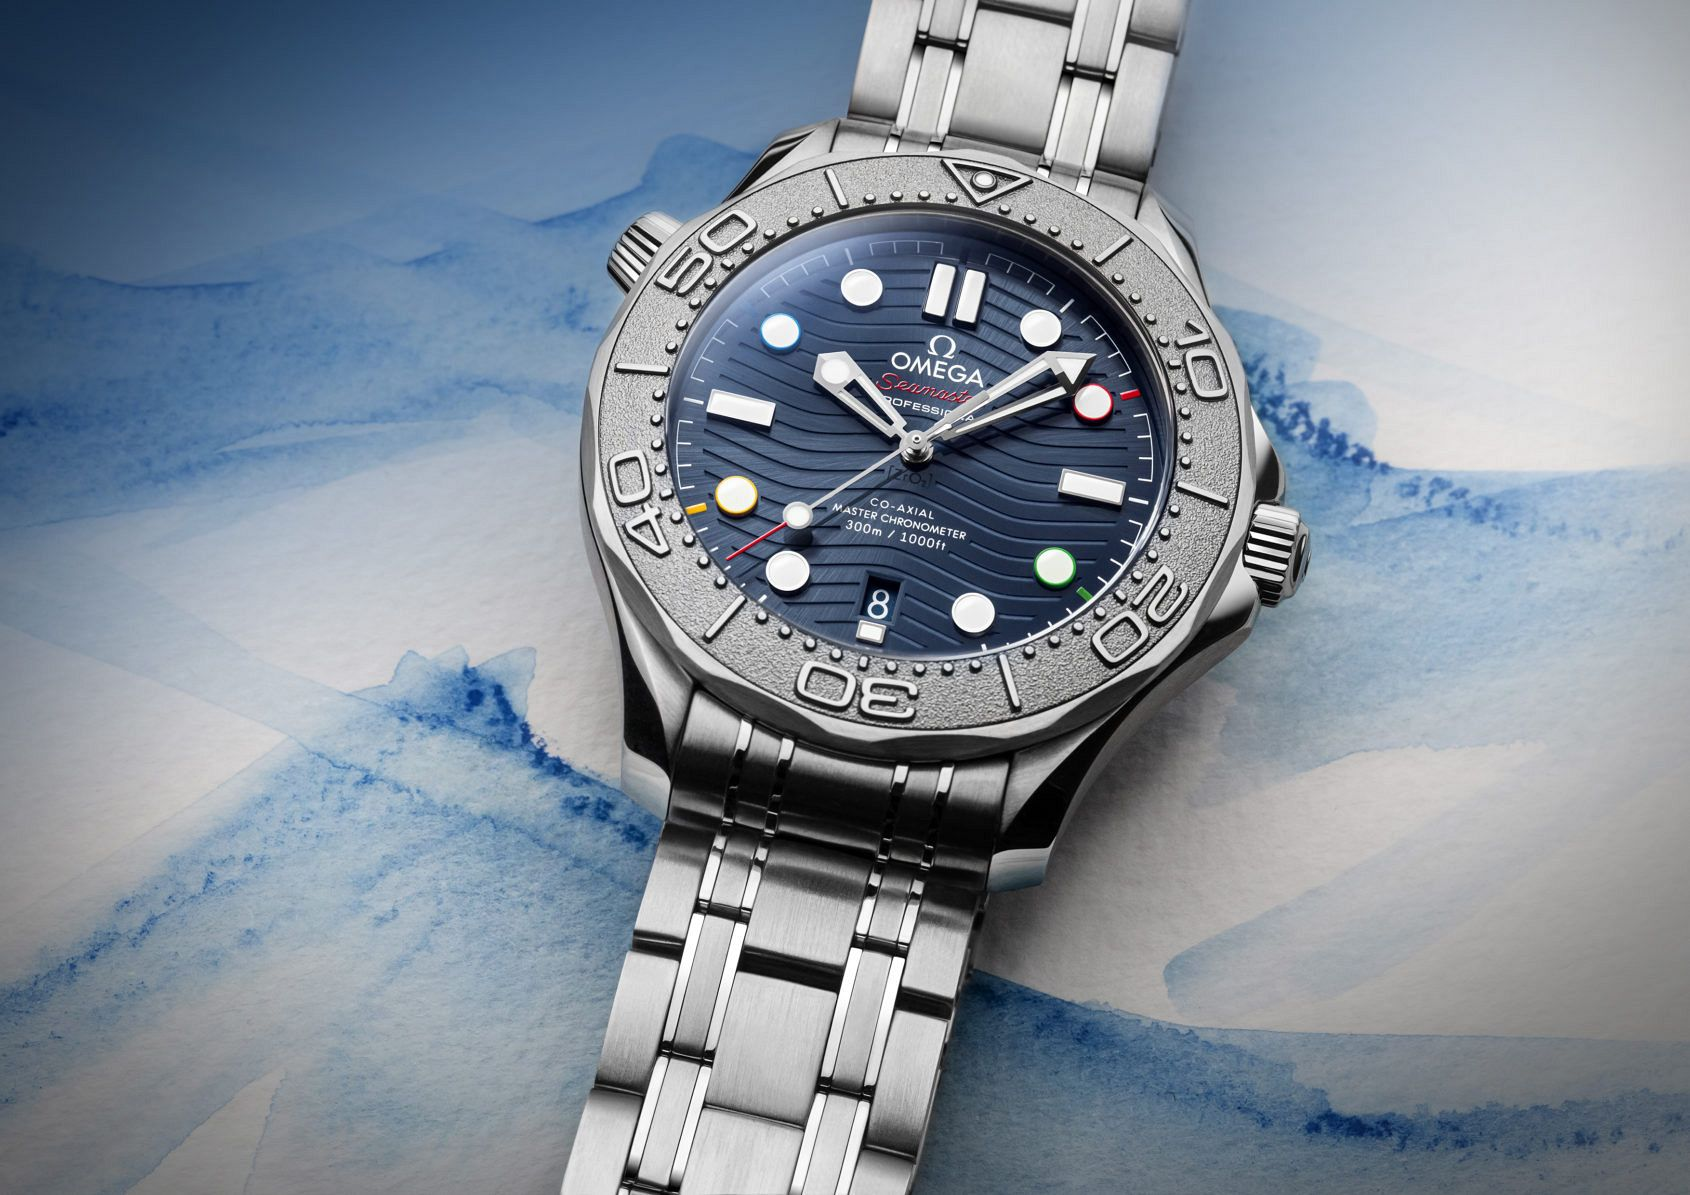 """INTRODUCING: The Omega Seamaster Diver 300M """"Beijing 2022"""" ushers in the Winter Olympics"""